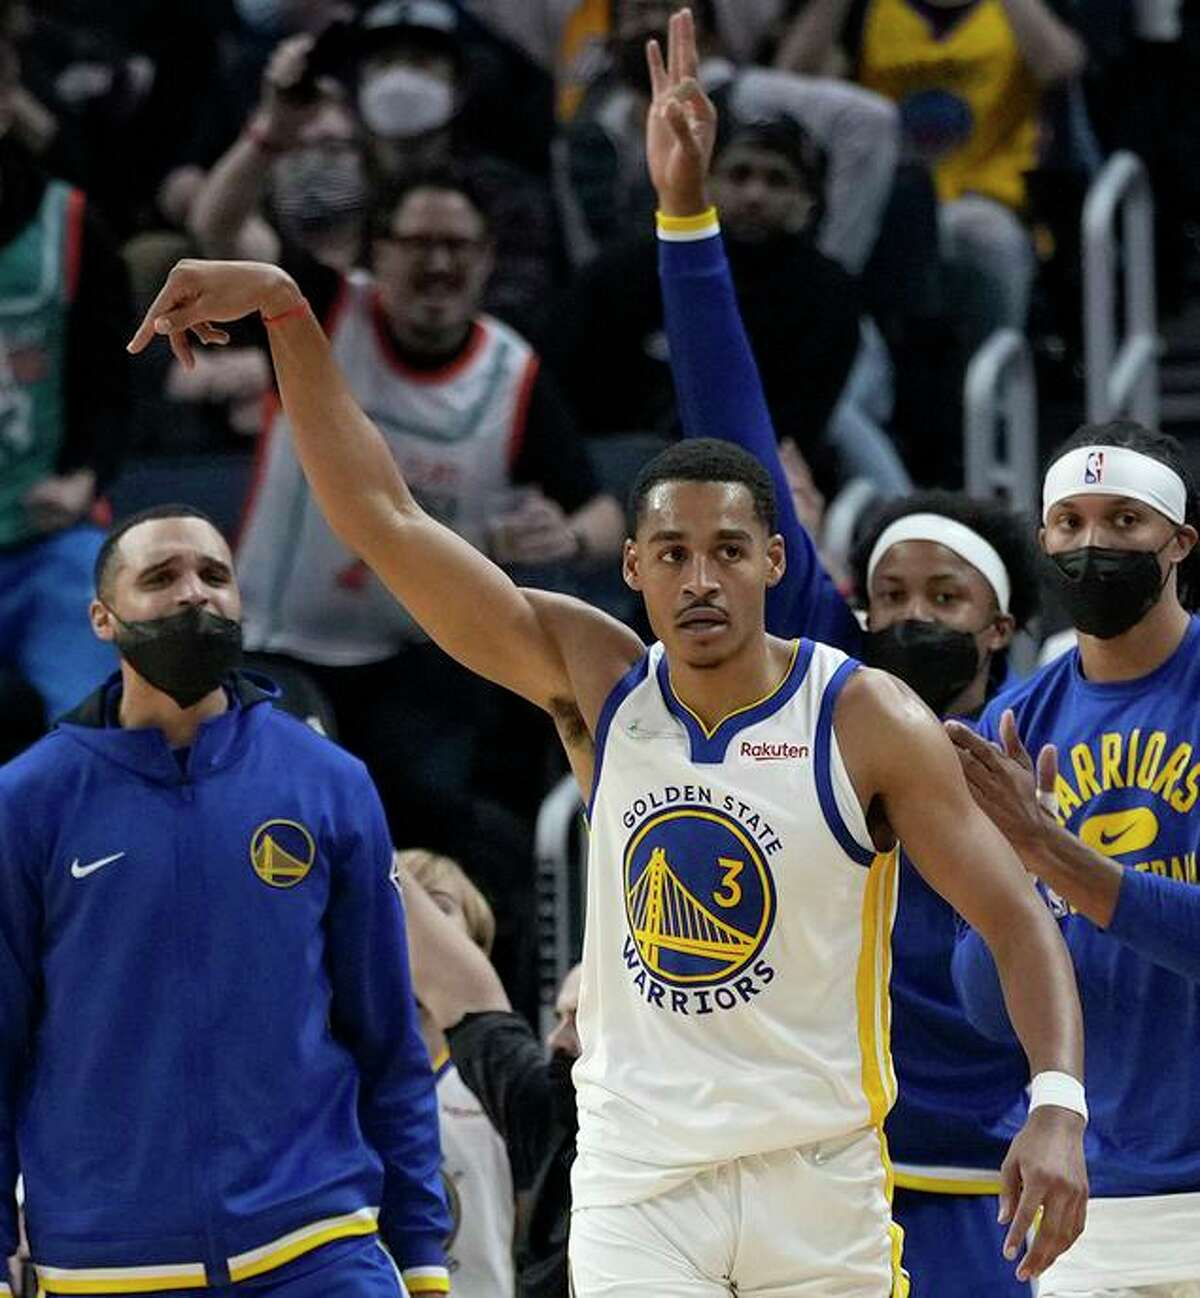 Jordan Poole of the Warriors reacts after hitting a 3-pointer against the Lakers.